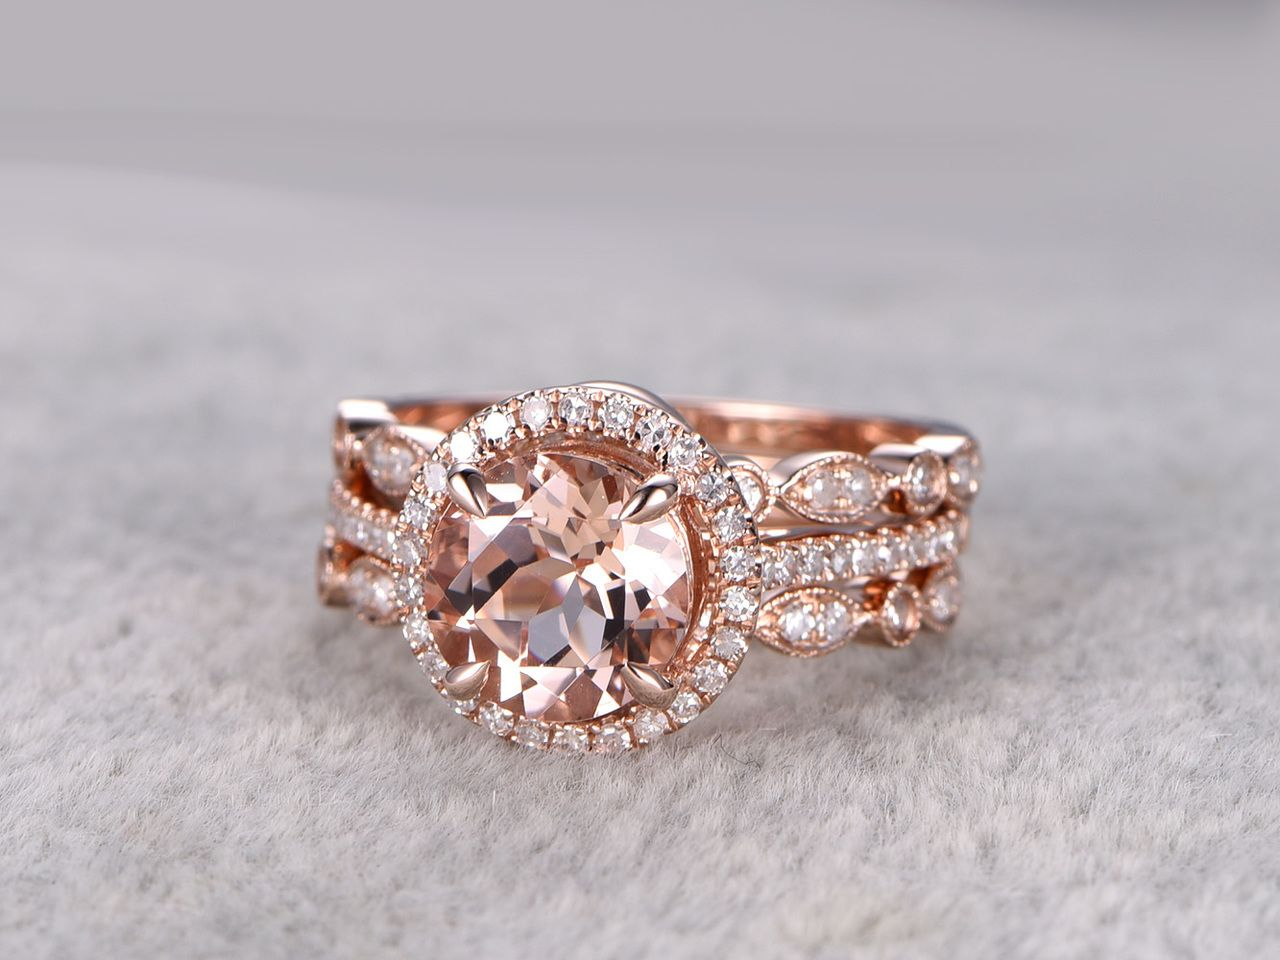 3pcs round morganite wedding set curved diamond bridal ring 14k rose gold halo art deco antique - Morganite Wedding Ring Set